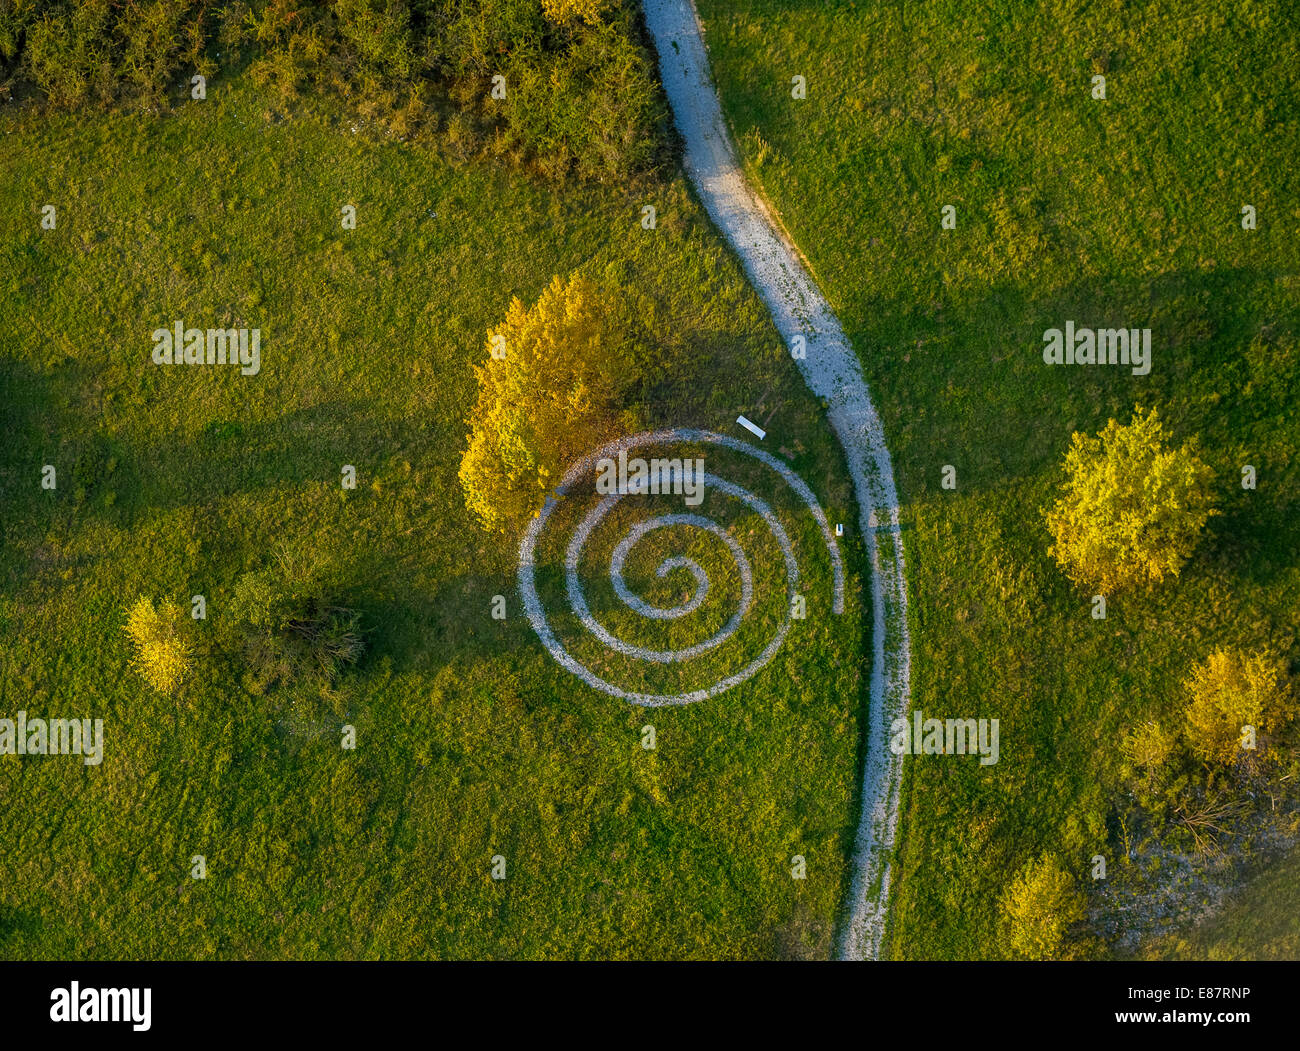 Aerial view, spiralling path, quarries with a health trail, Geseke, North Rhine-Westphalia, Germany - Stock Image